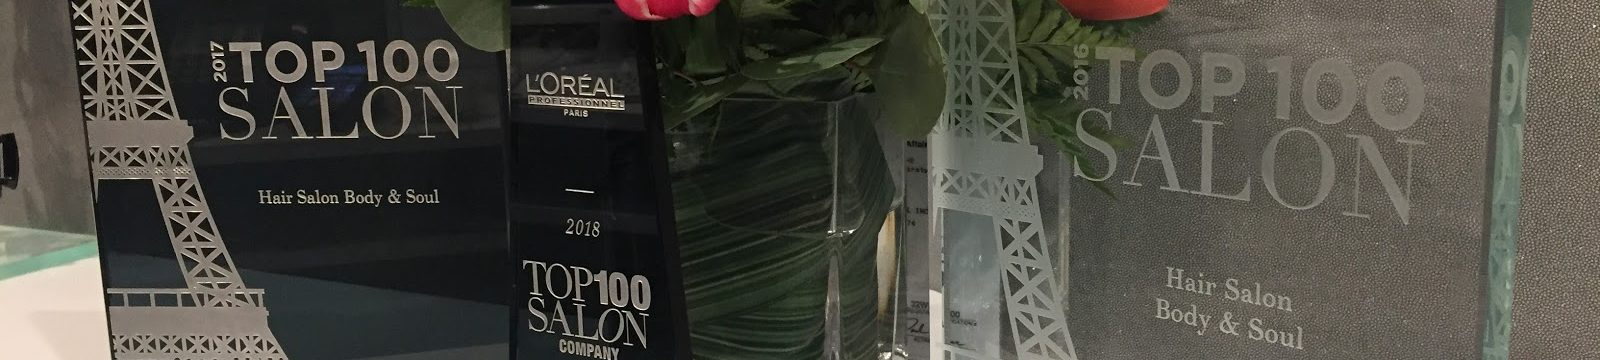 Hair Salon Body and Soul, New Providence   Top 100 L'Oreal Professionnel Salon in 2018